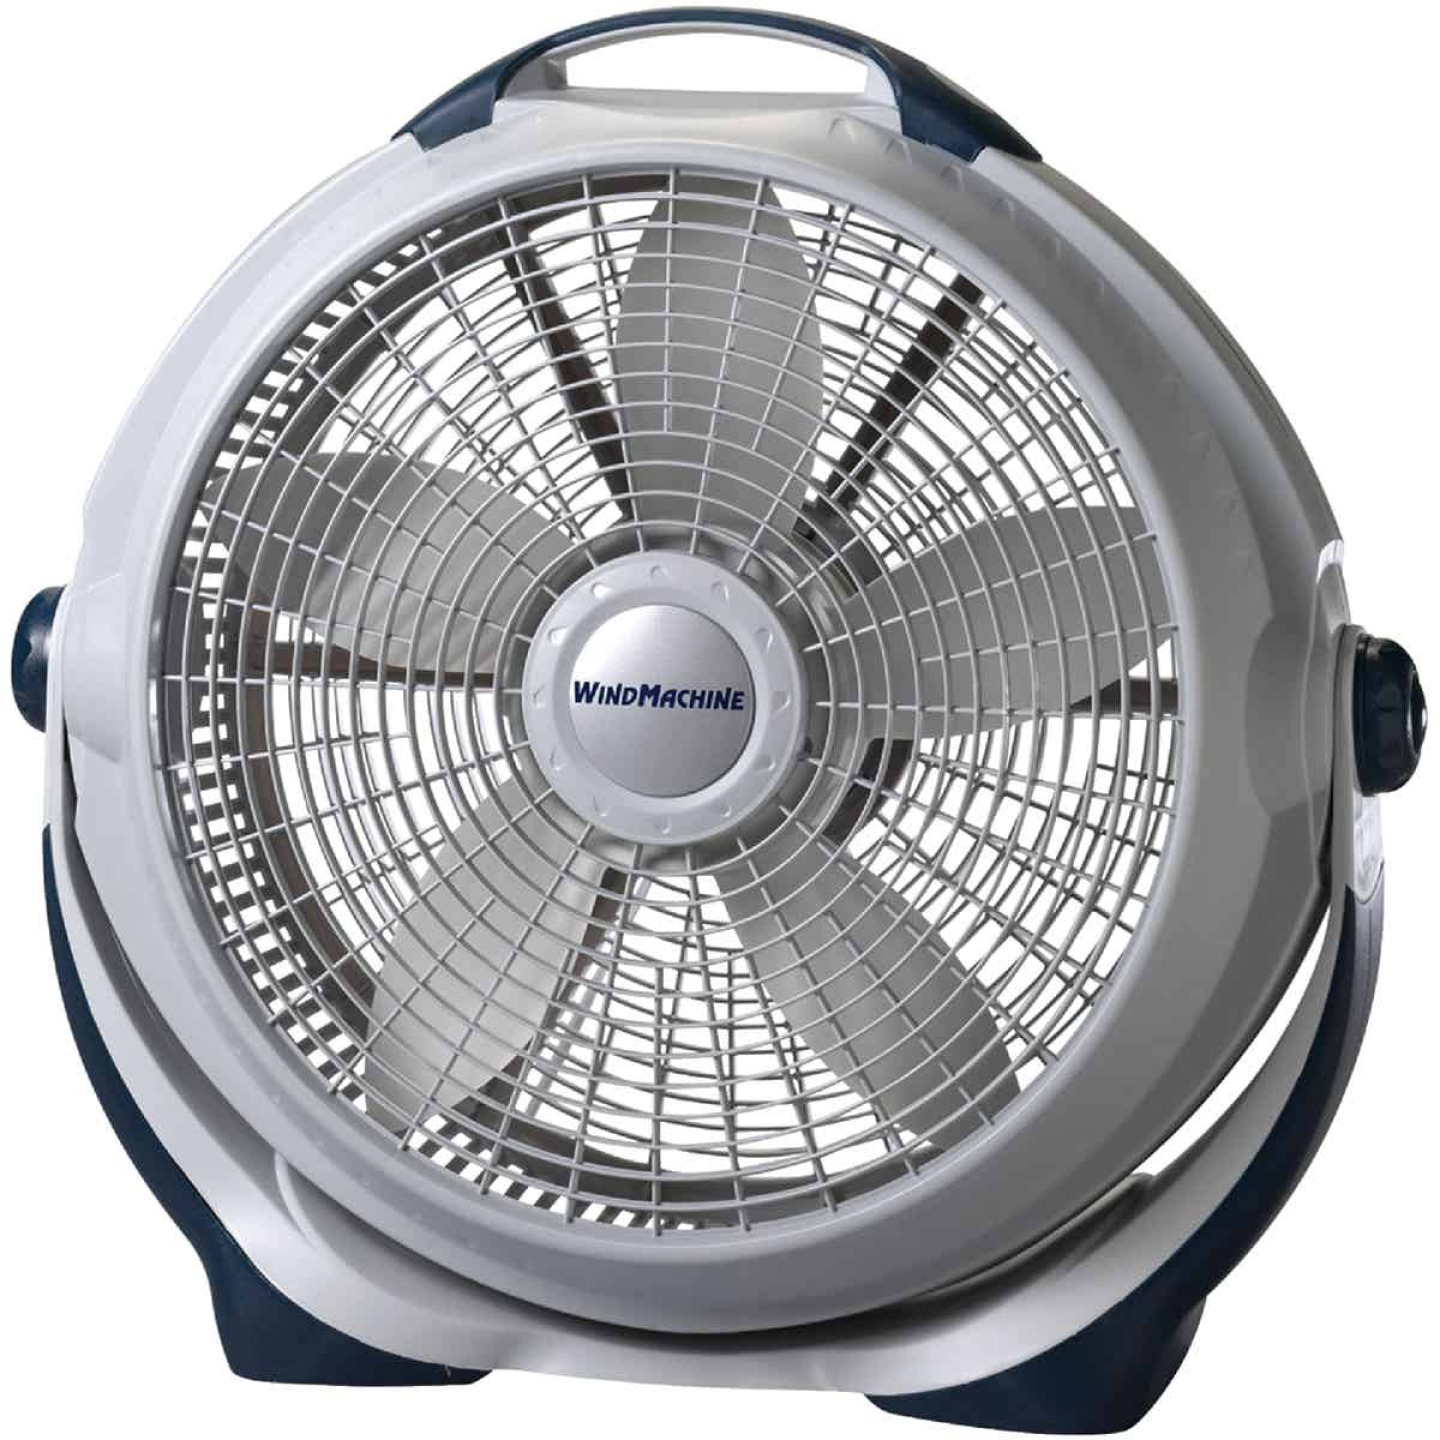 Lasko Wind Machine 20 In. 3-Speed Pearl Floor Fan Image 1